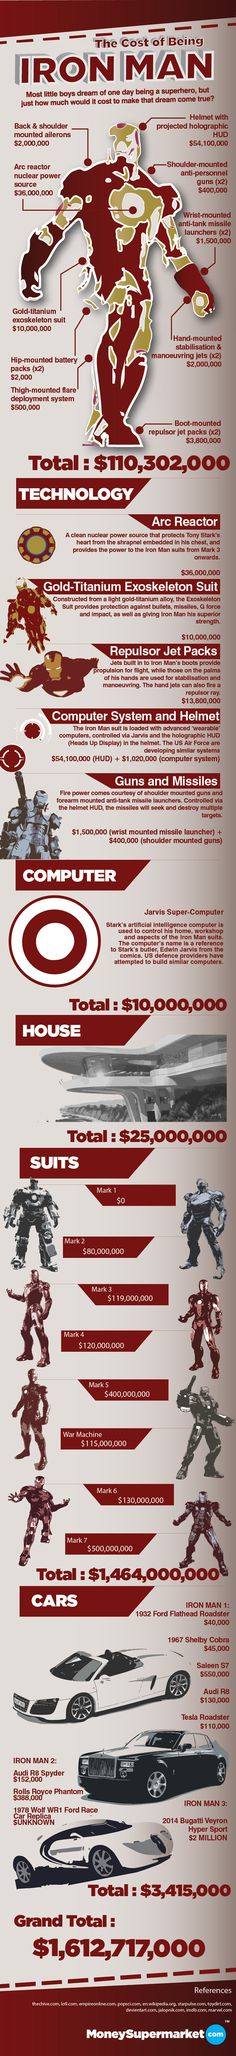 The cost of being Iron Man, from www.moneysupermarket.com